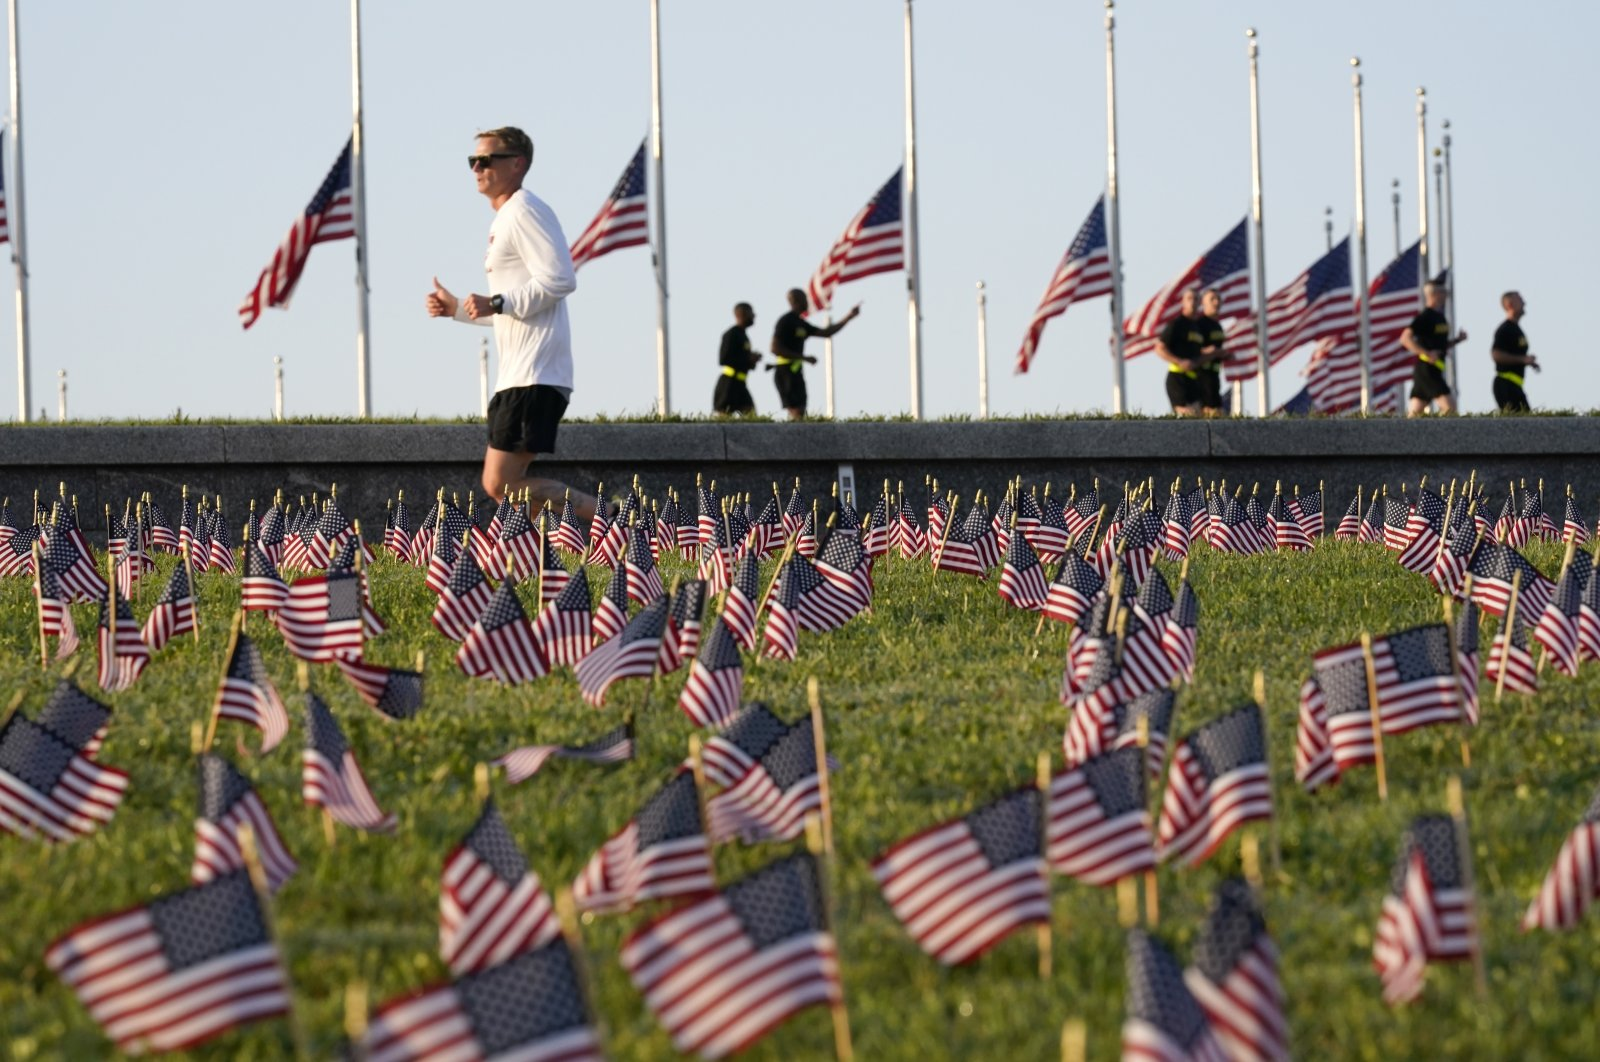 Morning joggers look over small flags that activists from the COVID-19 Memorial Project placed on the grounds of the National Mall to mark the 200,000 lives lost in the U.S. to COVID-19, in Washington, D.C., Sept. 22, 2020. (AP Photo)